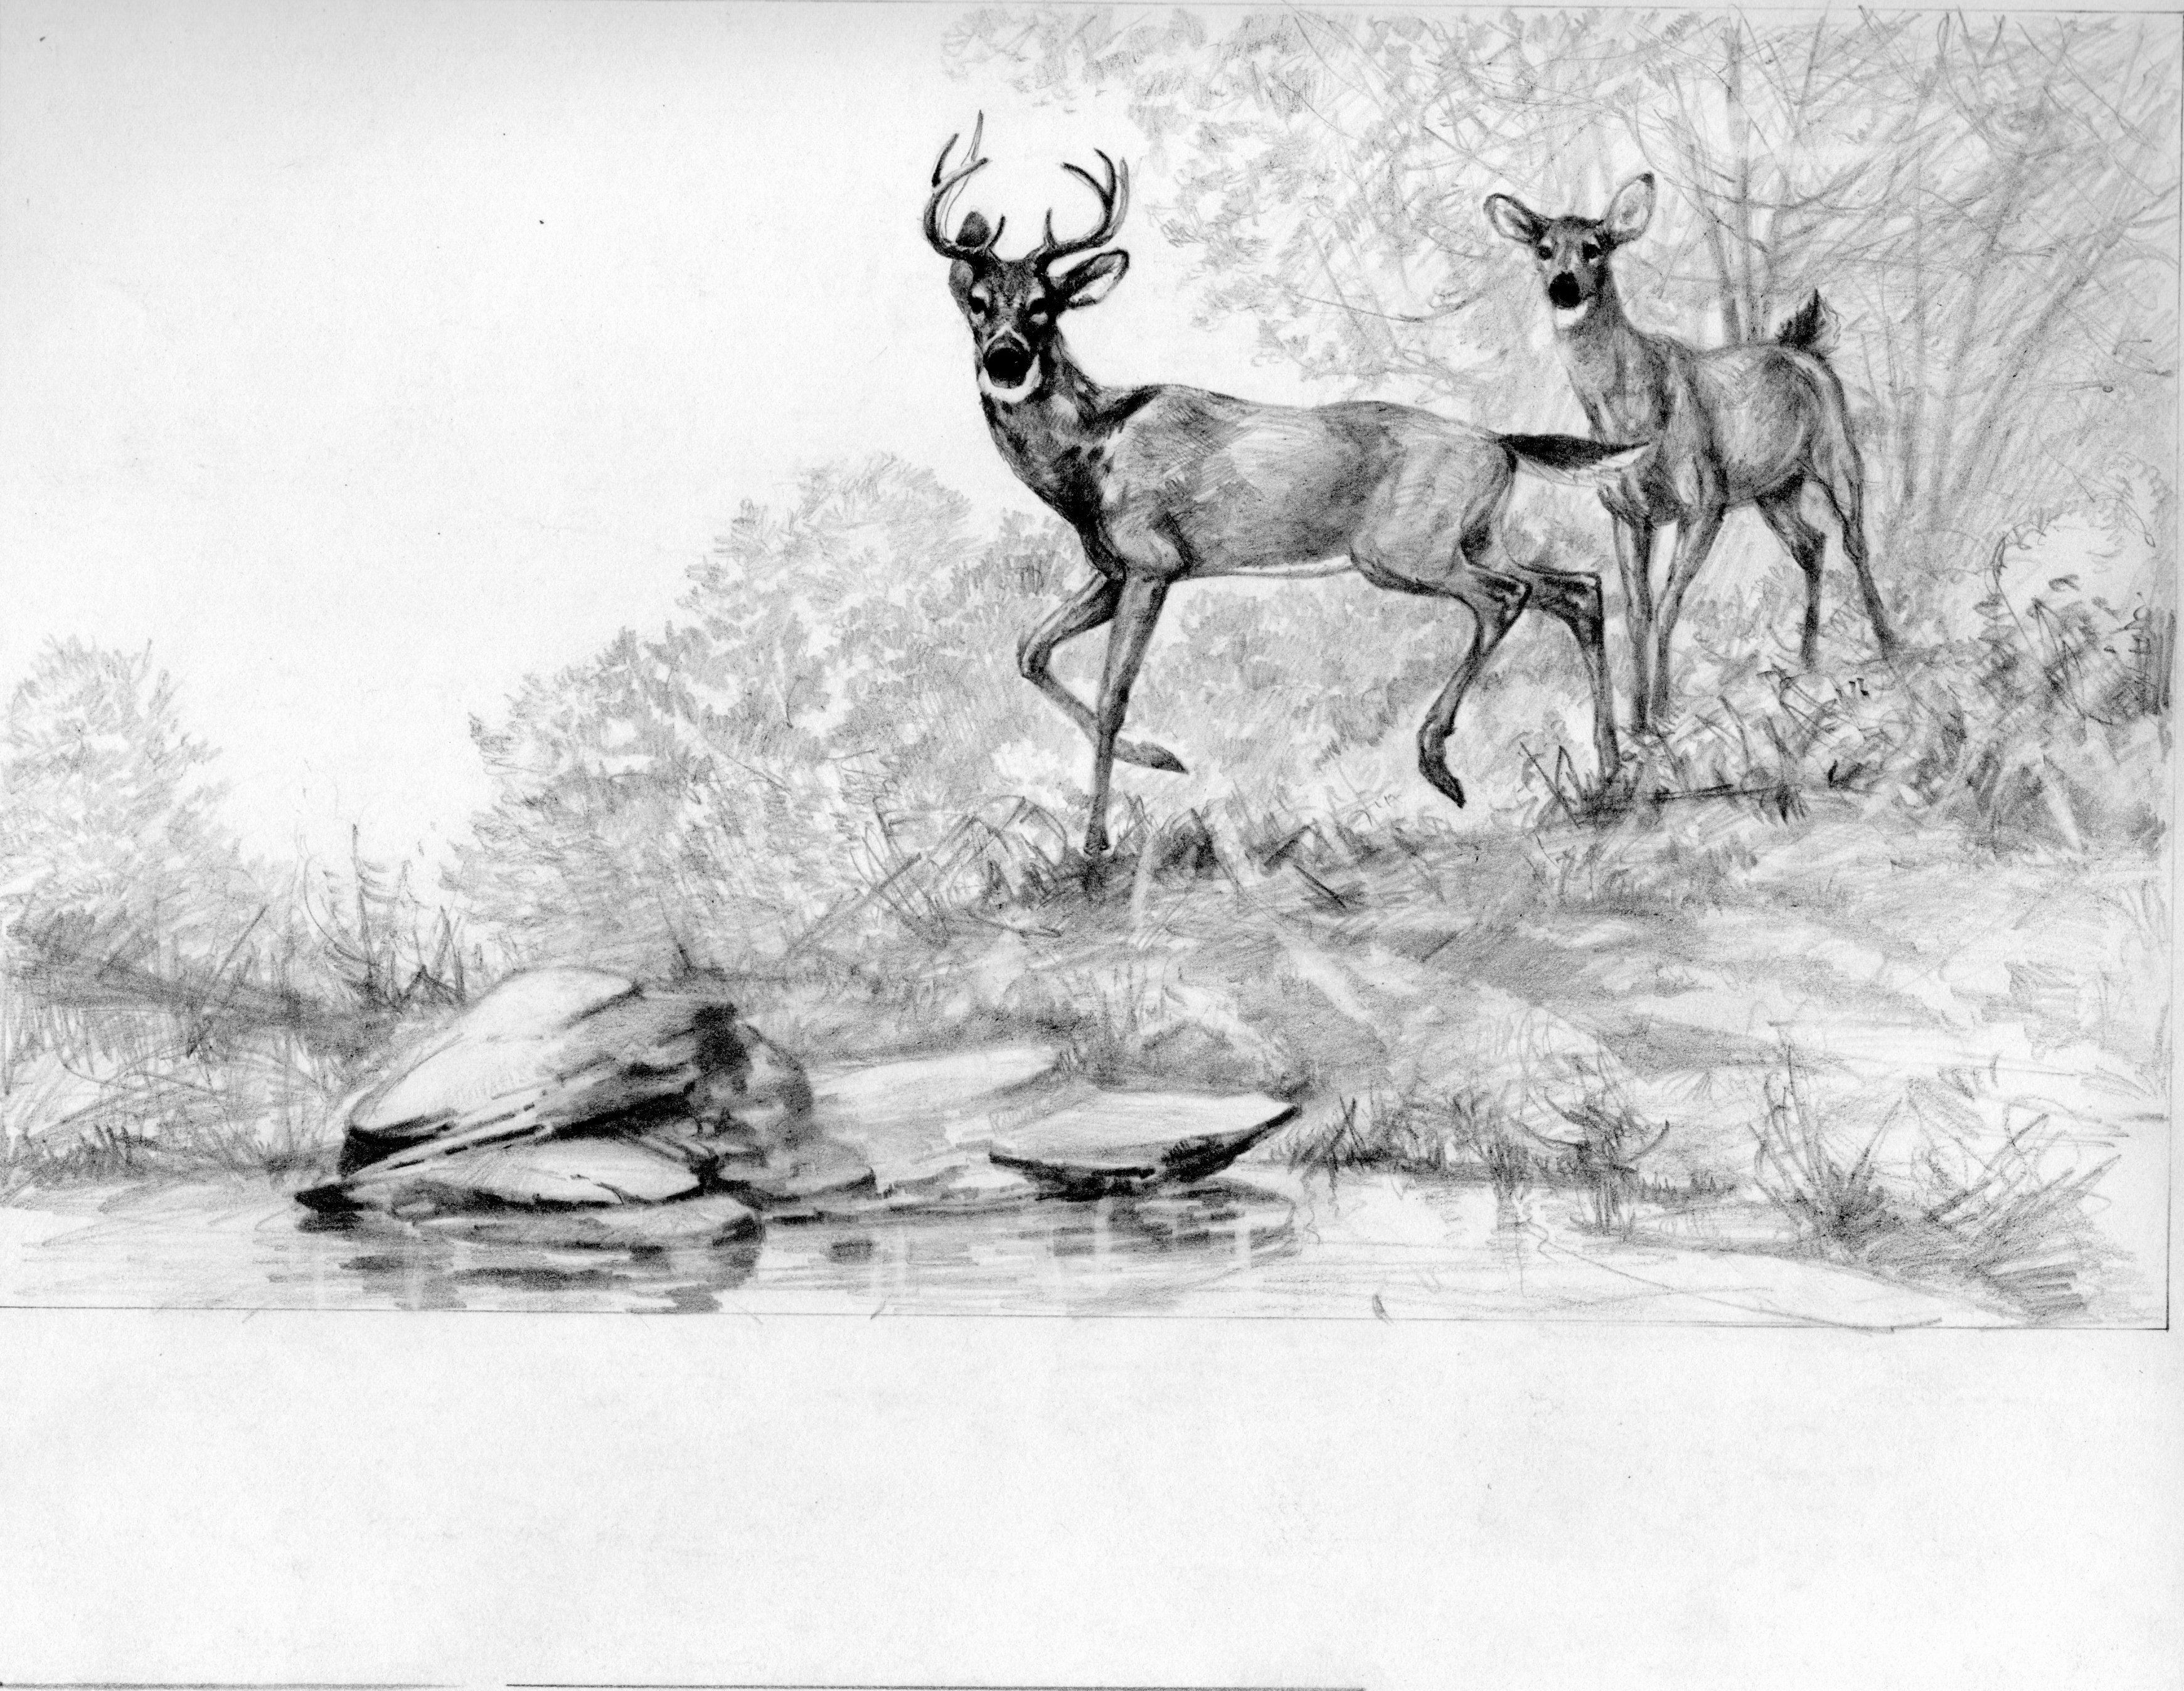 Pencil Sketches Of Nature Lovely Pencil Drawings Wildlife Nature Pencil Drawings